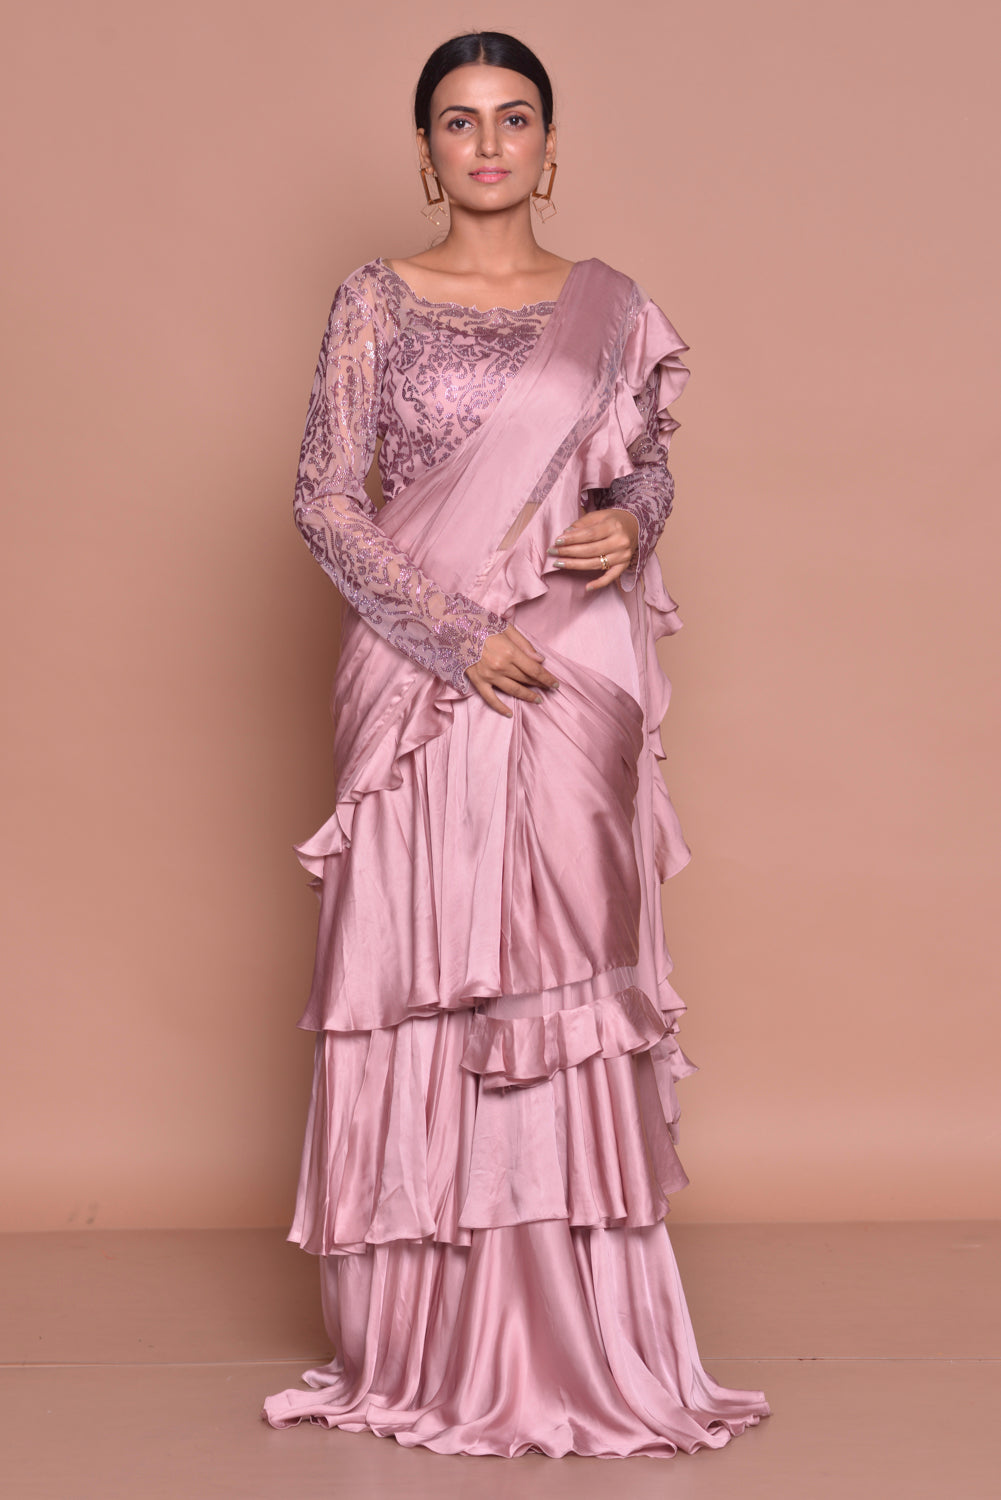 Buy stylish onion pink ruffled saree online in USA with full sleeves blouse. Look fashionable on special occasions in contemporary sarees, designer sarees with blouse, embroidered saris from Pure Elegance Indian luxury clothing store in USA.-full view